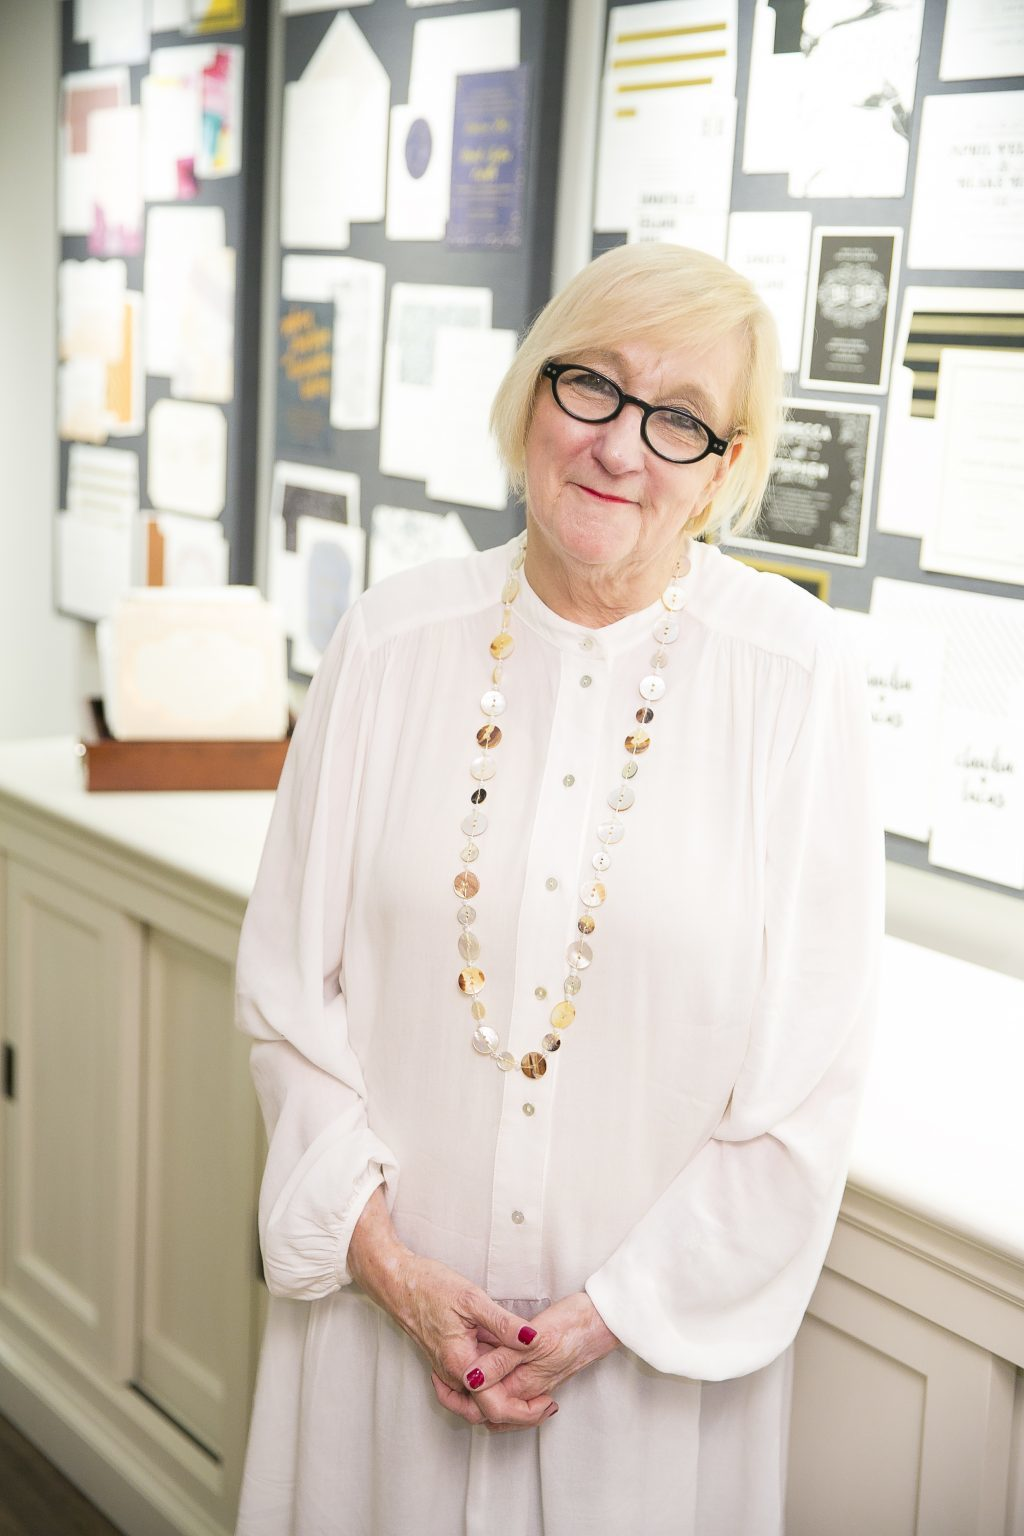 Meet the staff at the Bella Figura flagship store: Linda Hays